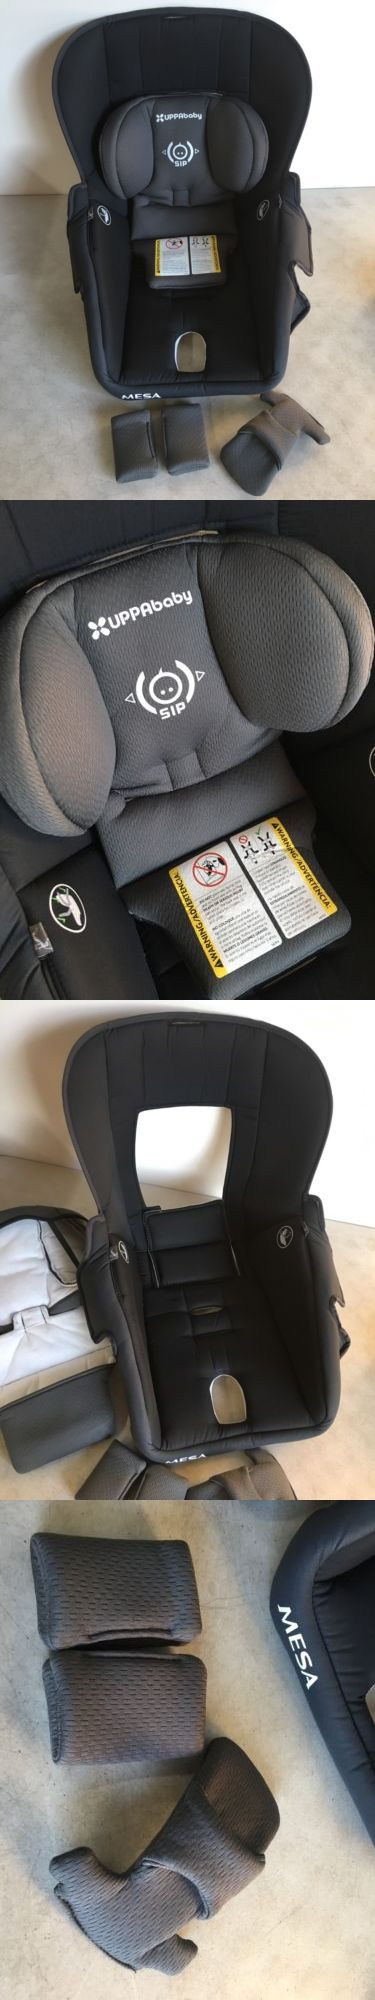 Infant Car Seat 5 20 Lbs 66696 New 2017 Uppababy Mesa Fabric Replacement BUY IT NOW ONLY 5999 On EBay